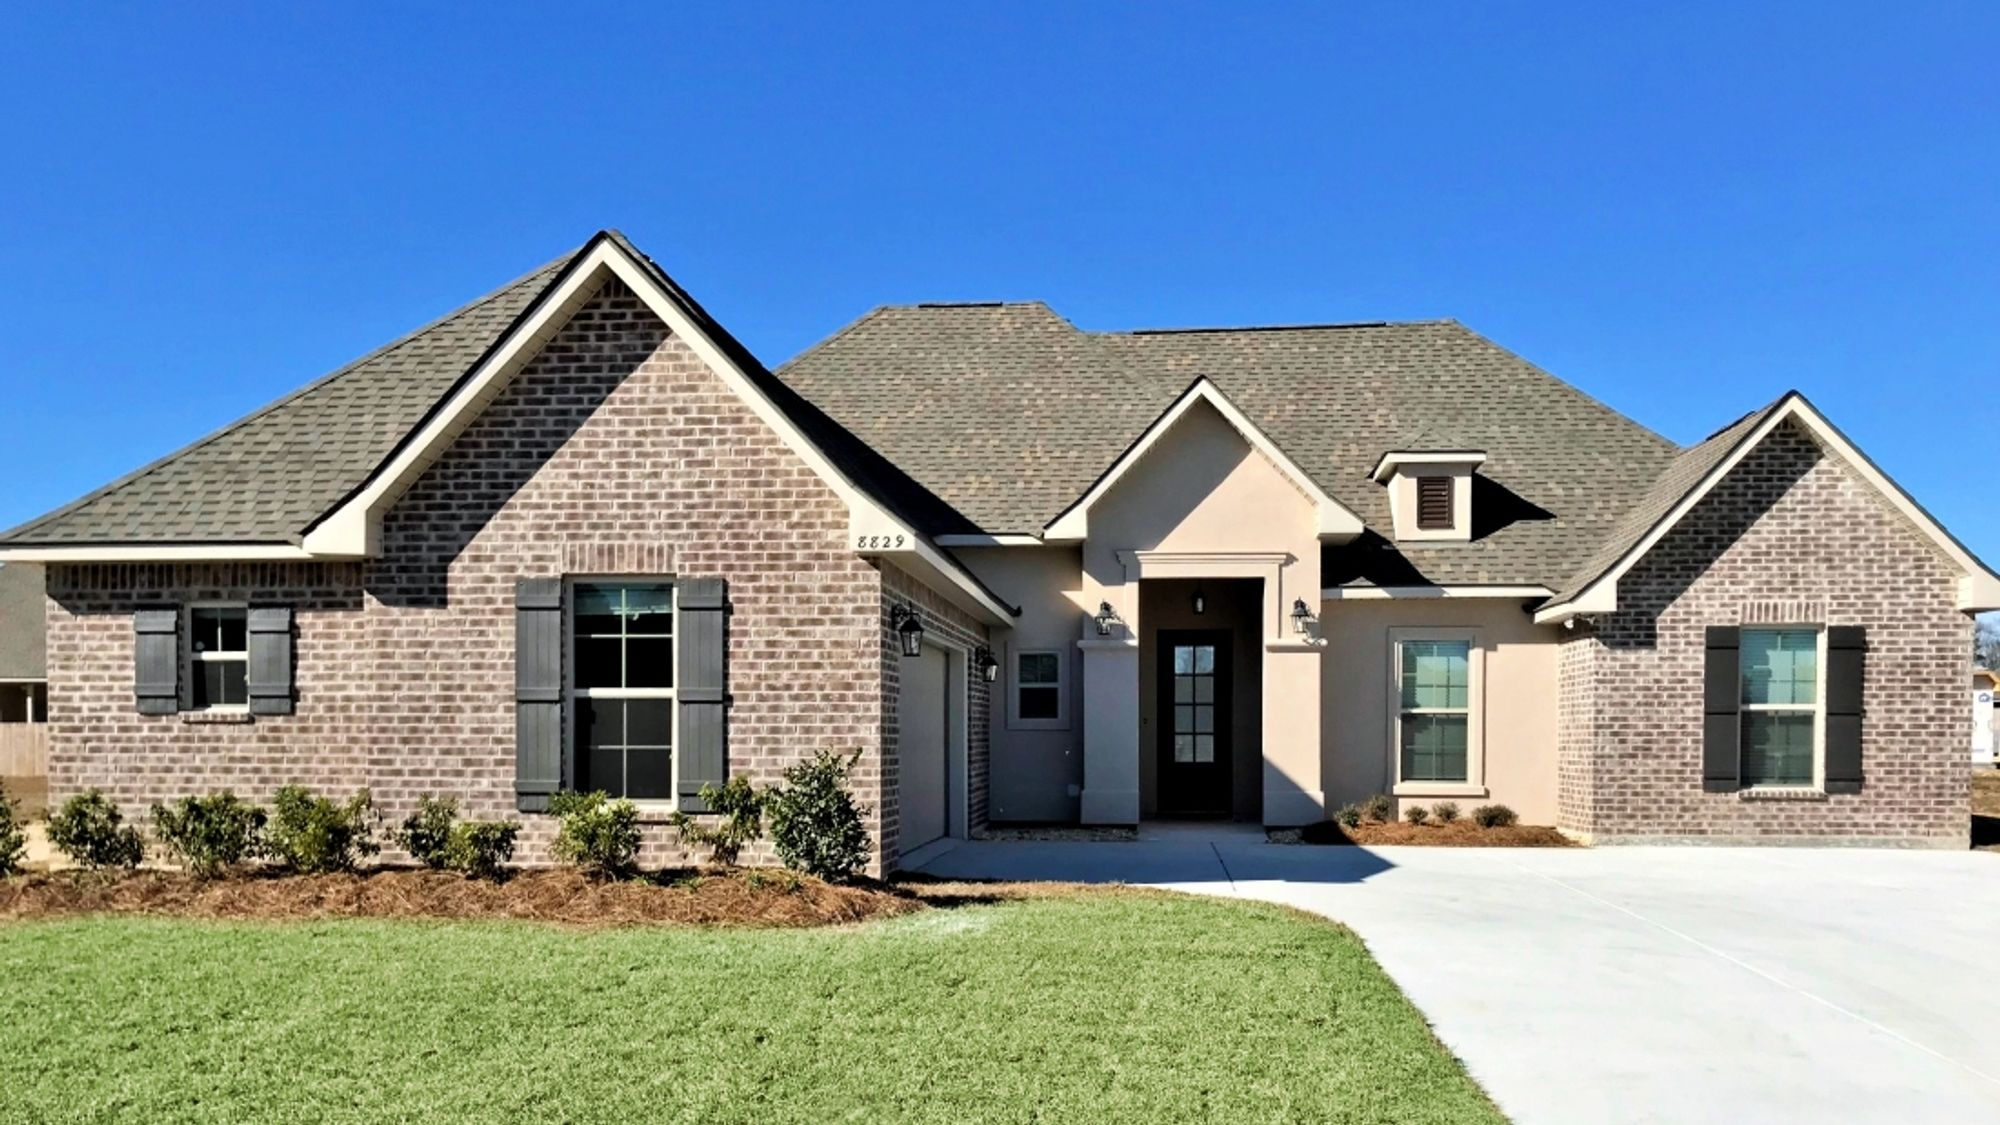 Front View - Canova III A - Nickens Lake Community - DSLD Homes - Denham Springs